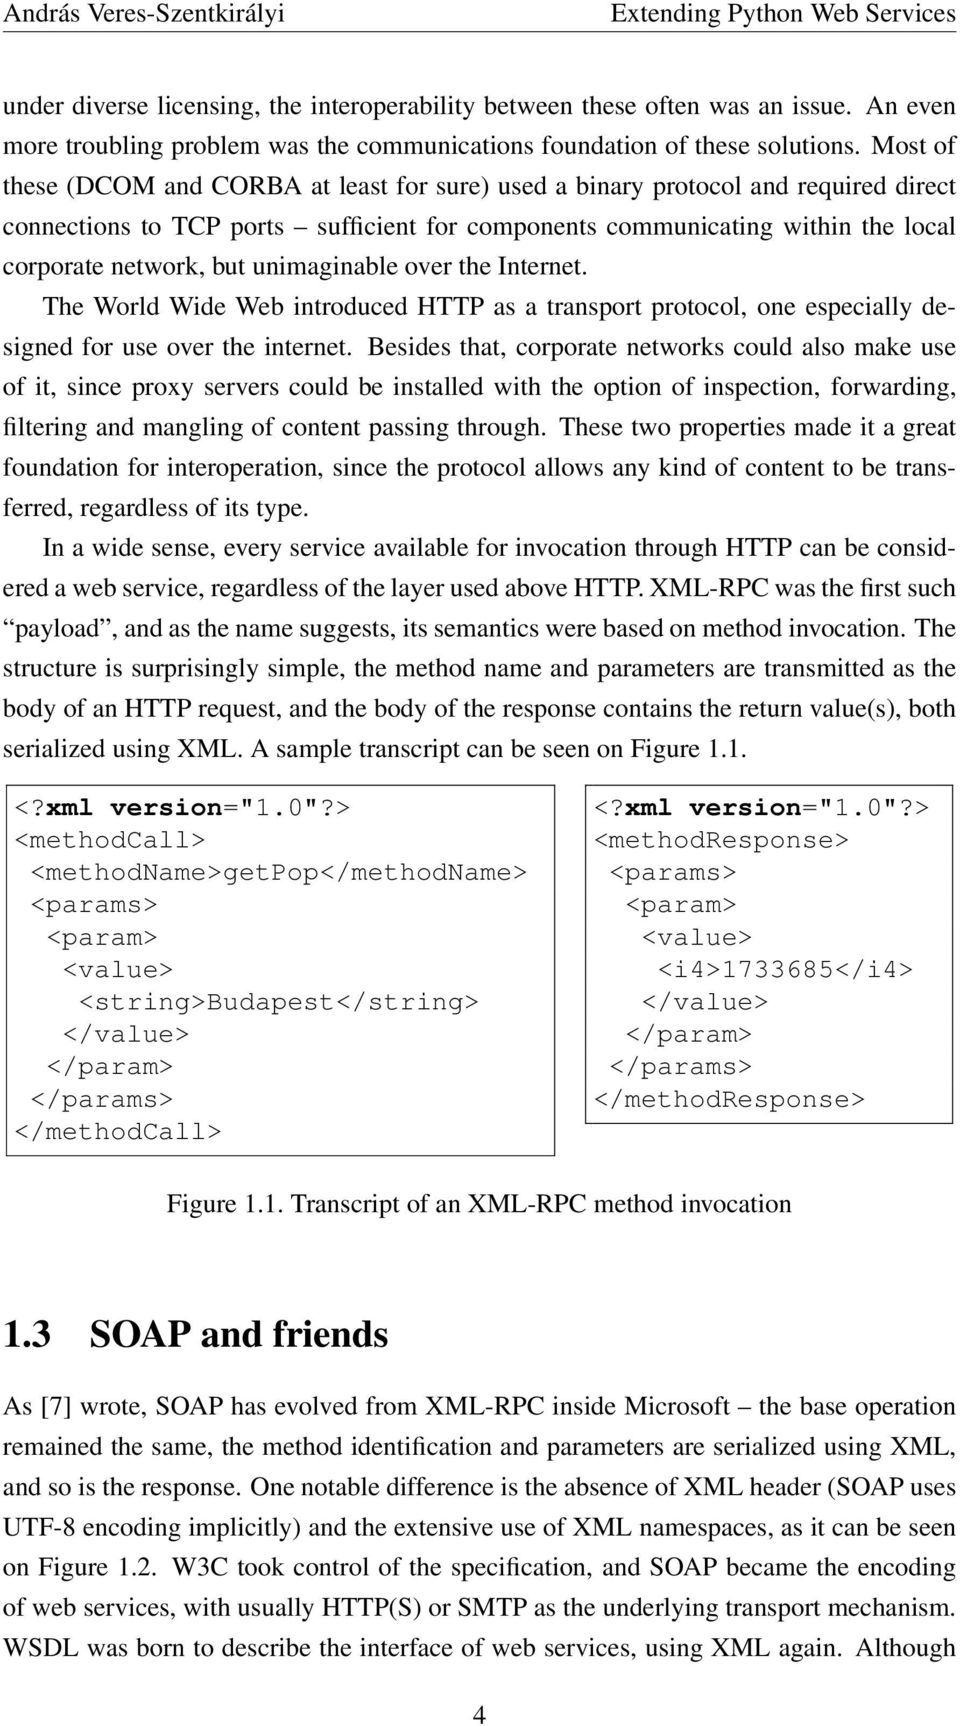 unimaginable over the Internet. The World Wide Web introduced HTTP as a transport protocol, one especially designed for use over the internet.